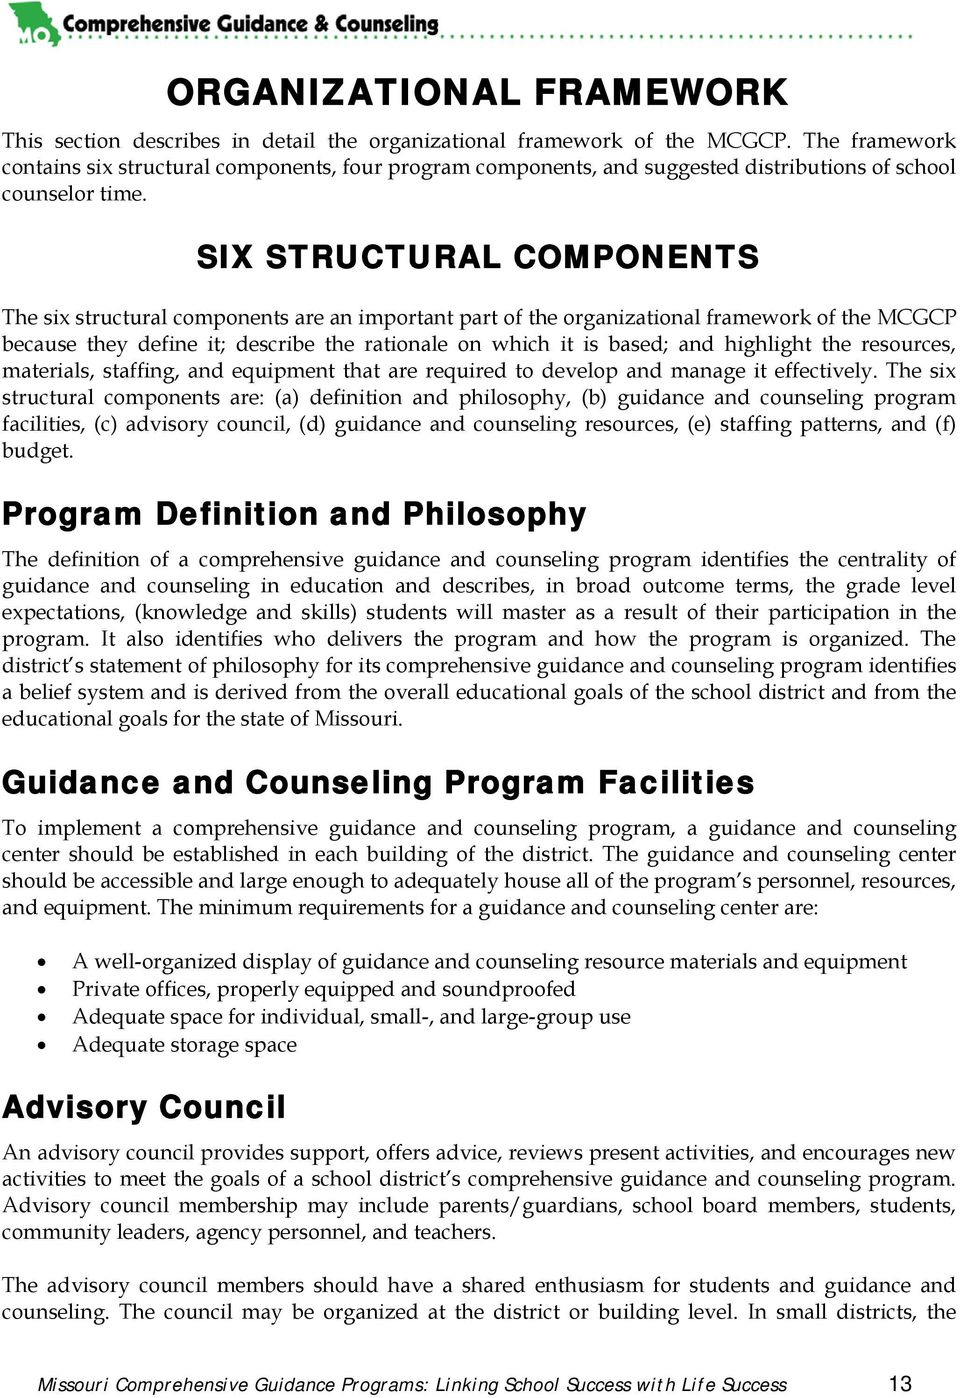 SIX STRUCTURAL COMPONENTS The six structural components are an important part of the organizational framework of the MCGCP because they define it; describe the rationale on which it is based; and